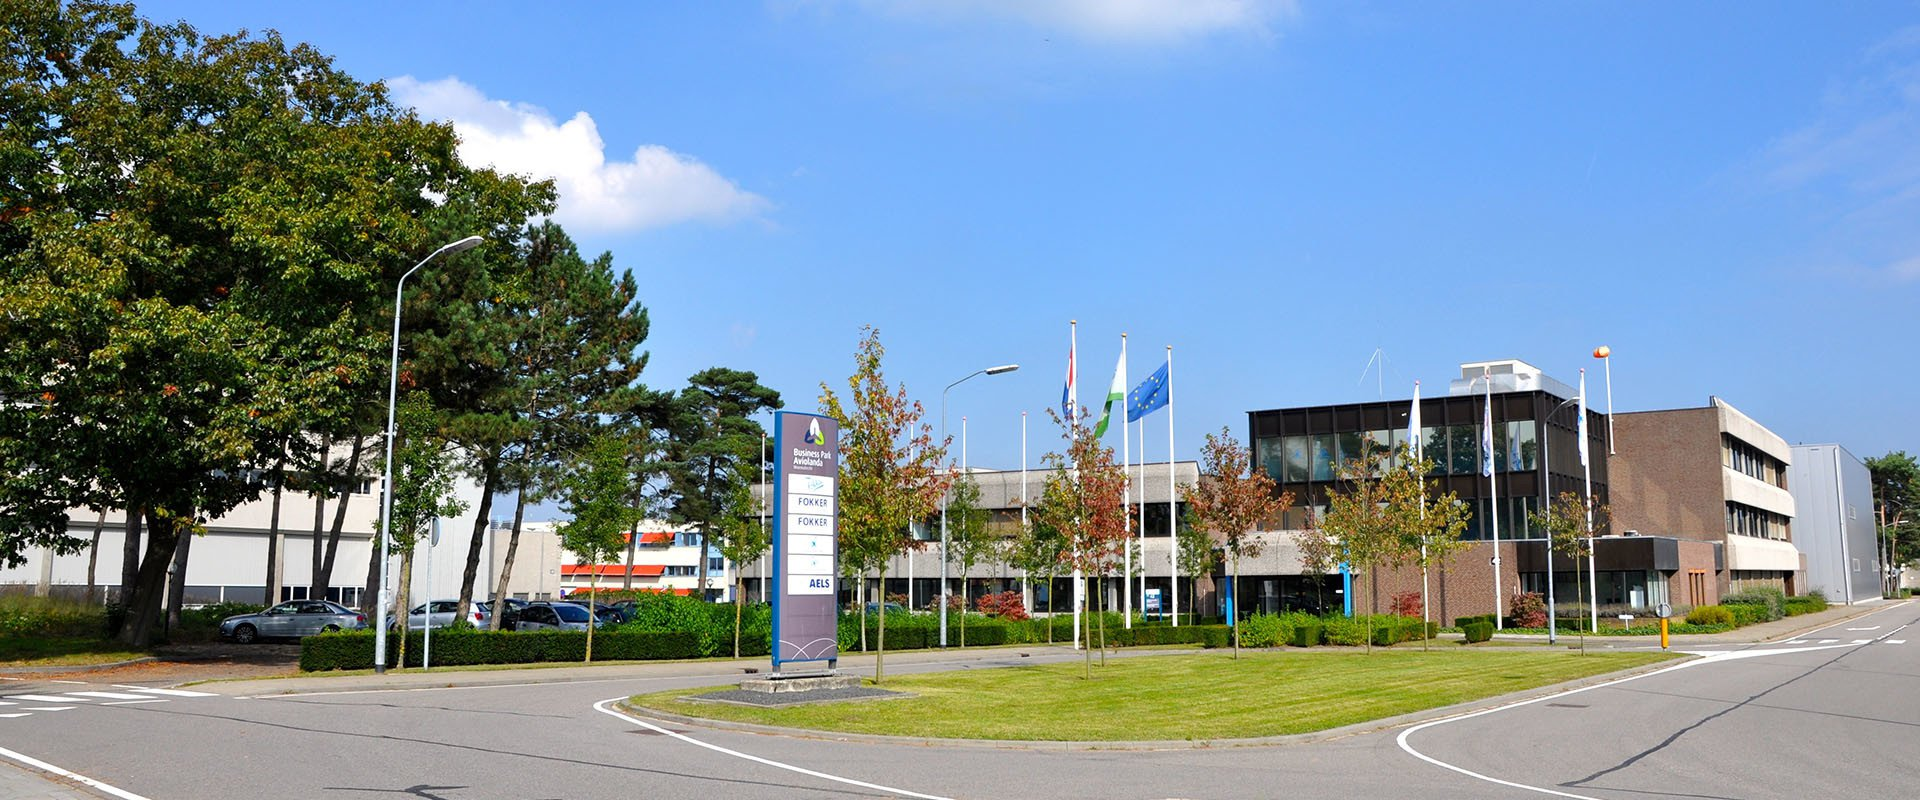 Aviolanda business park .jpg